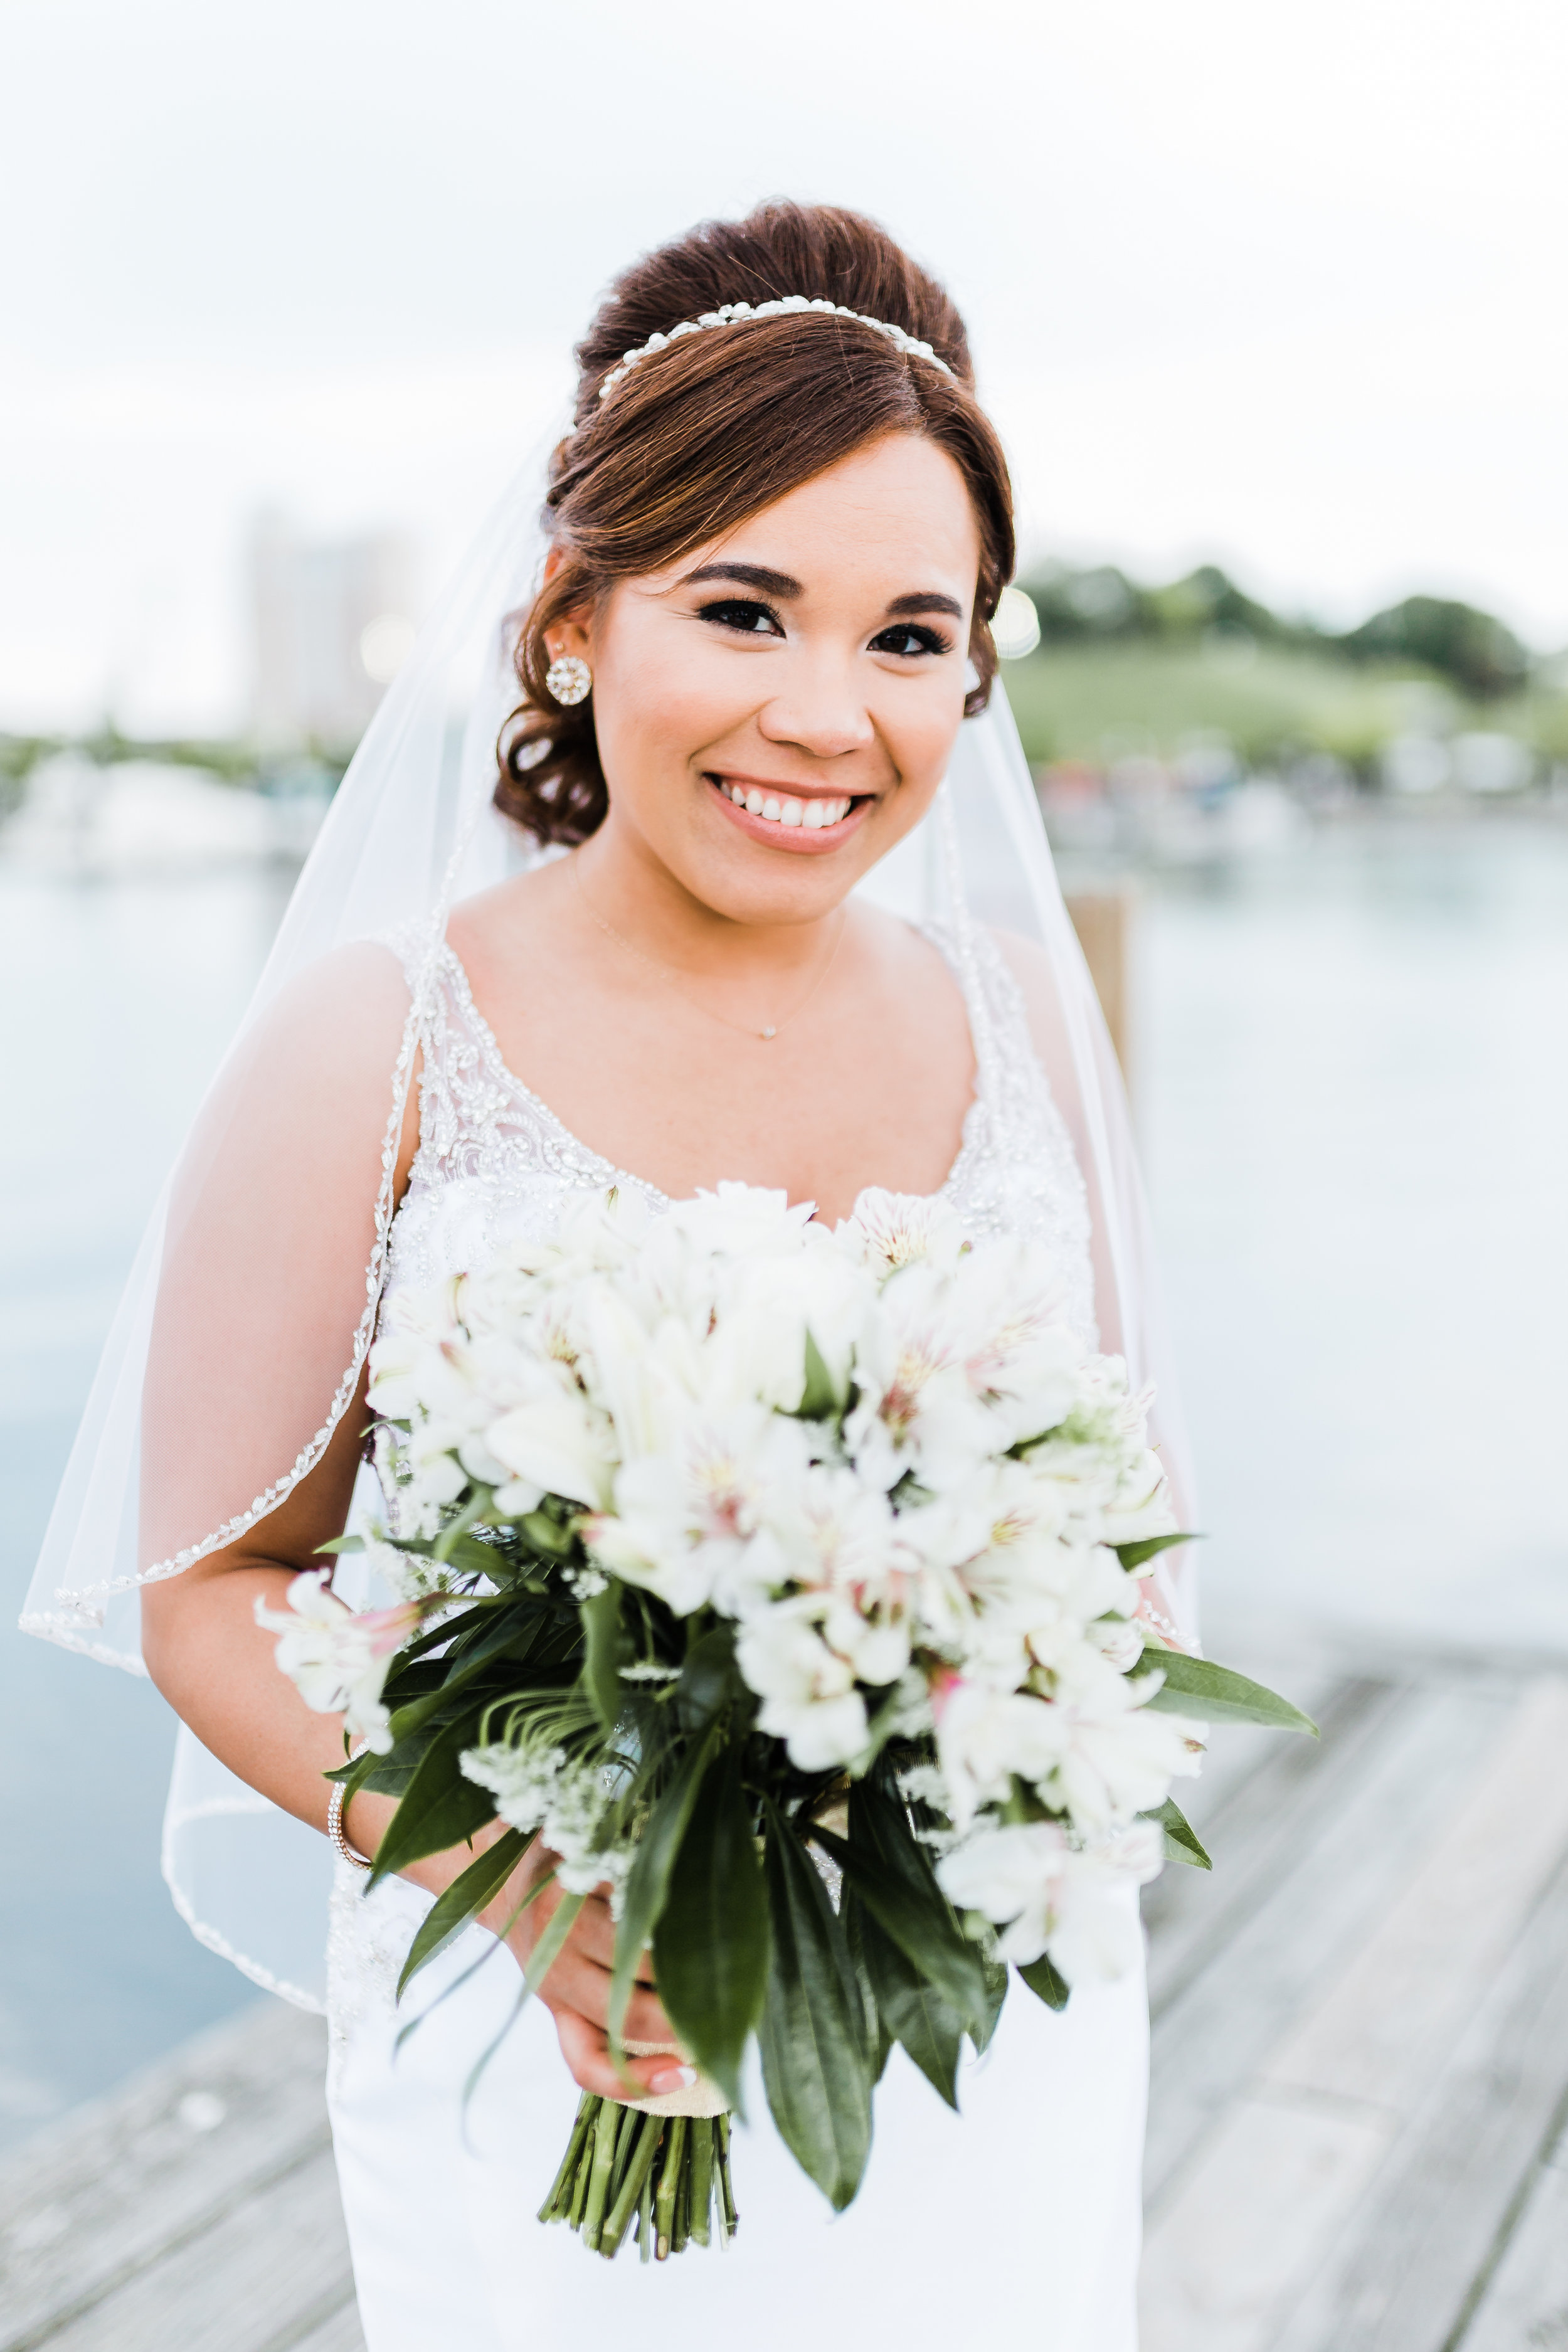 beautiful bride on her wedding day in baltimore maryland